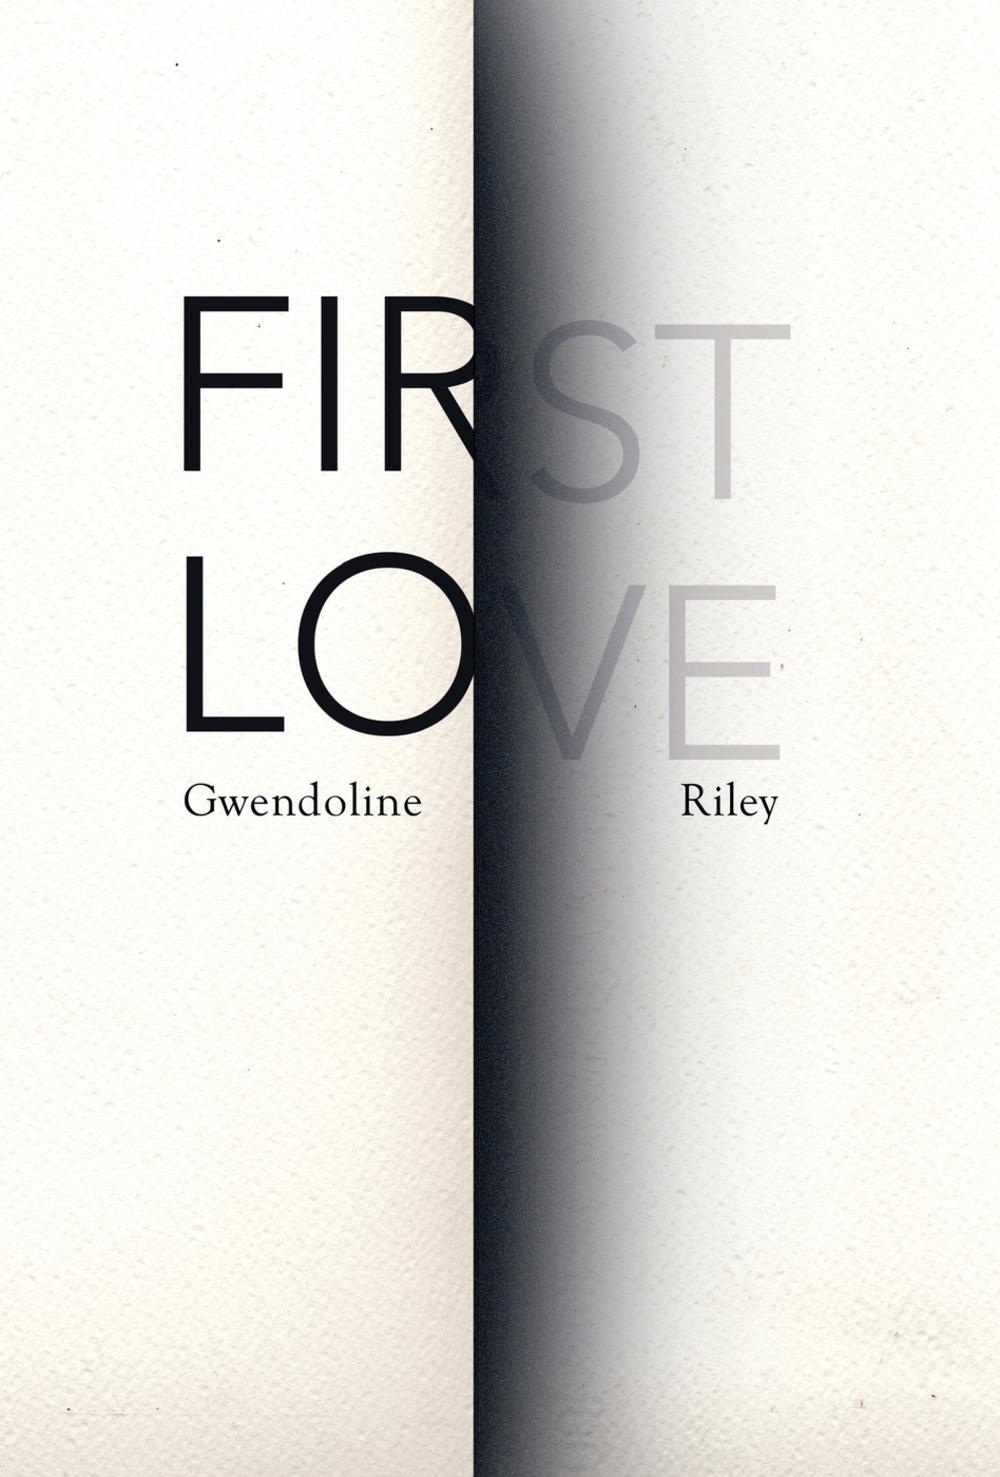 First Love Rewriting And Major Editing: Meanwhile, Over At Shiny: First Love, By Gwendoline Riley